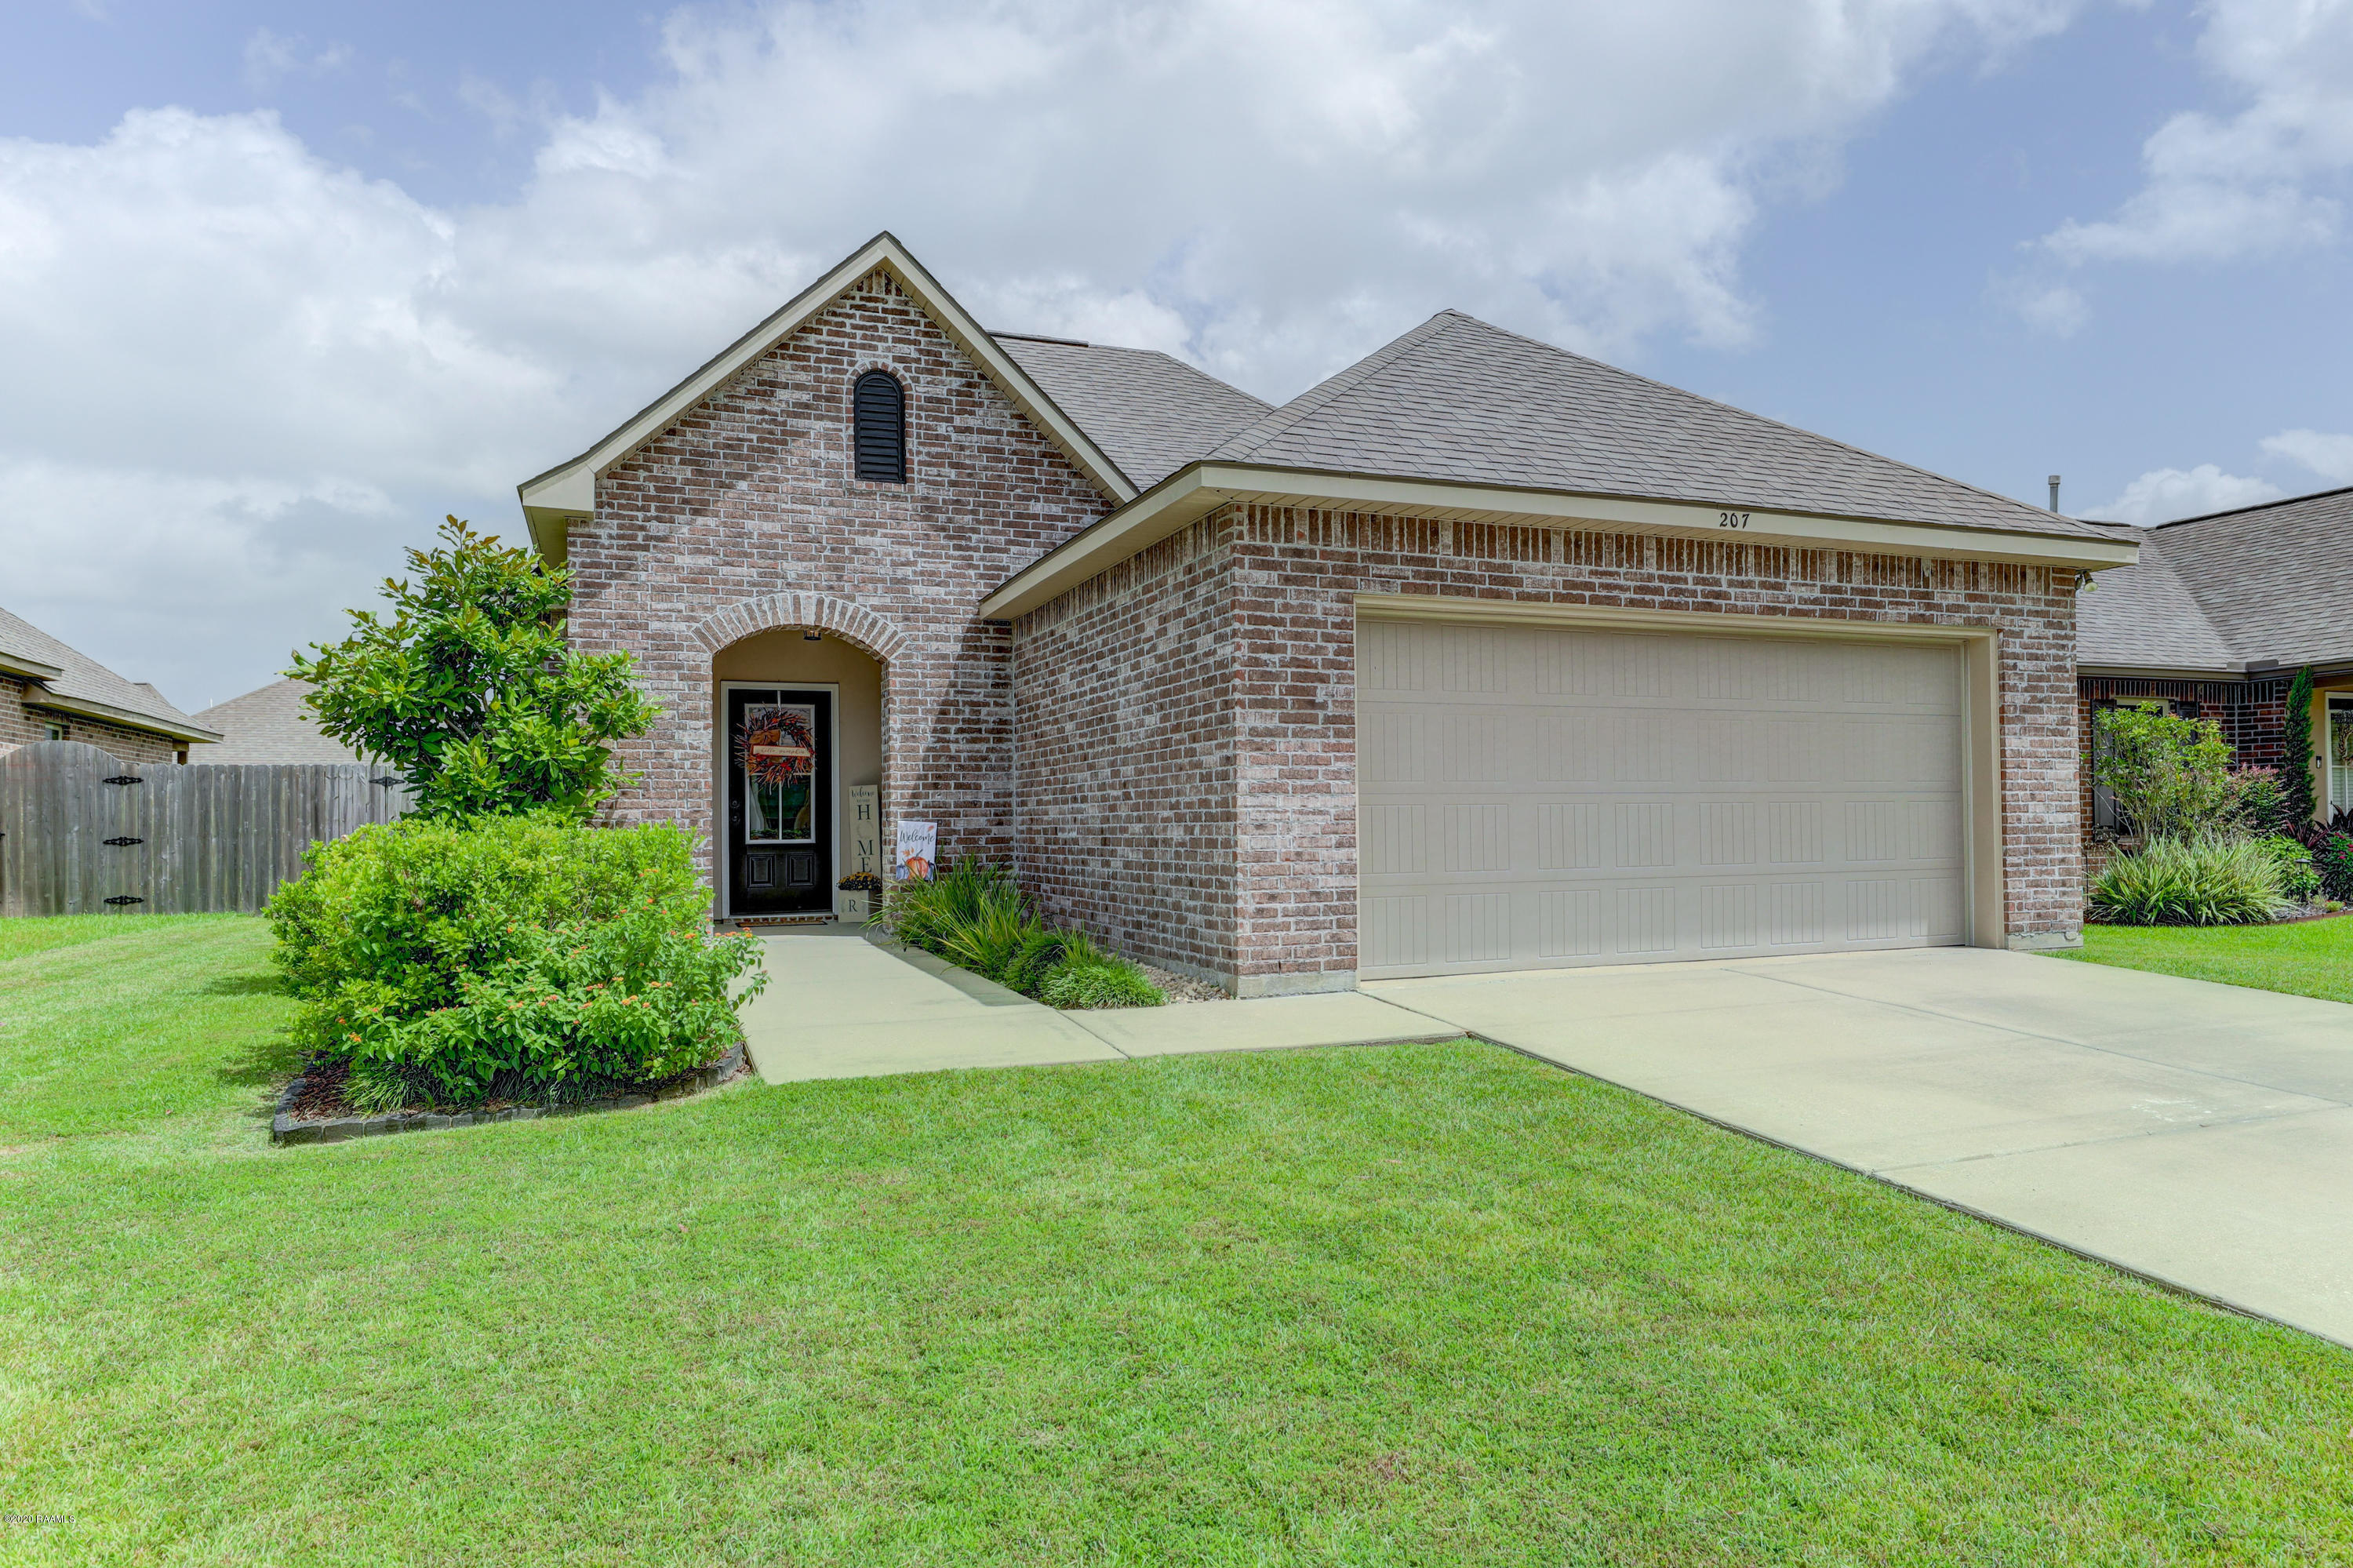 207 Marston House Drive, Youngsville, LA 70592